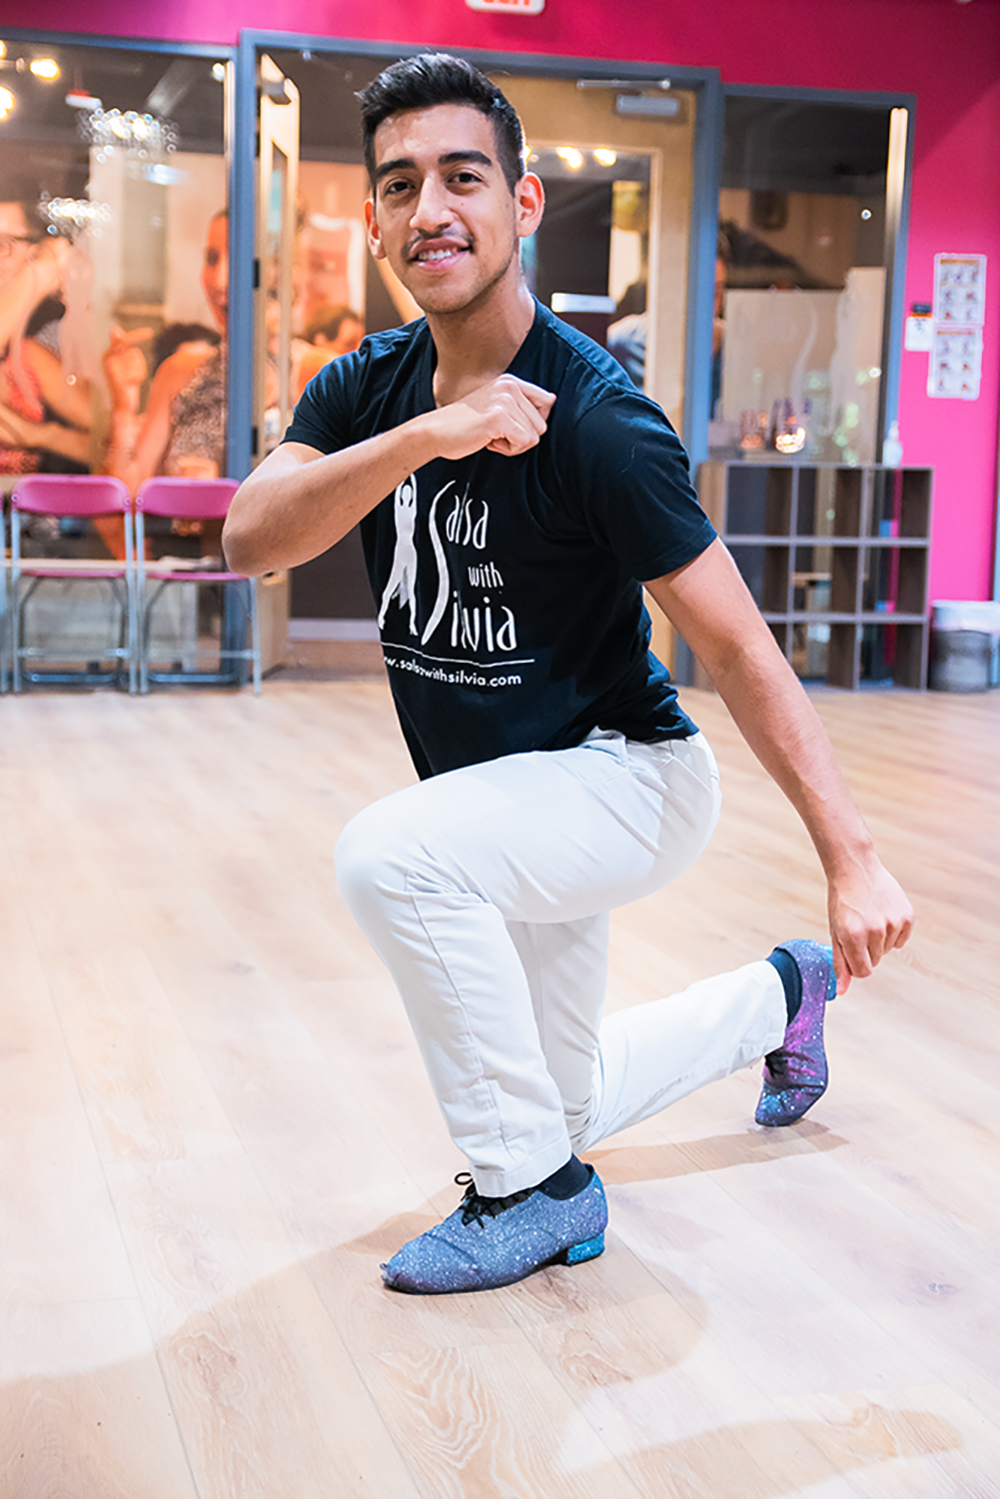 Instructor Chesco teaches Salsa and Bachata at the Salsa With Silvia studios in DC and Bethesda.